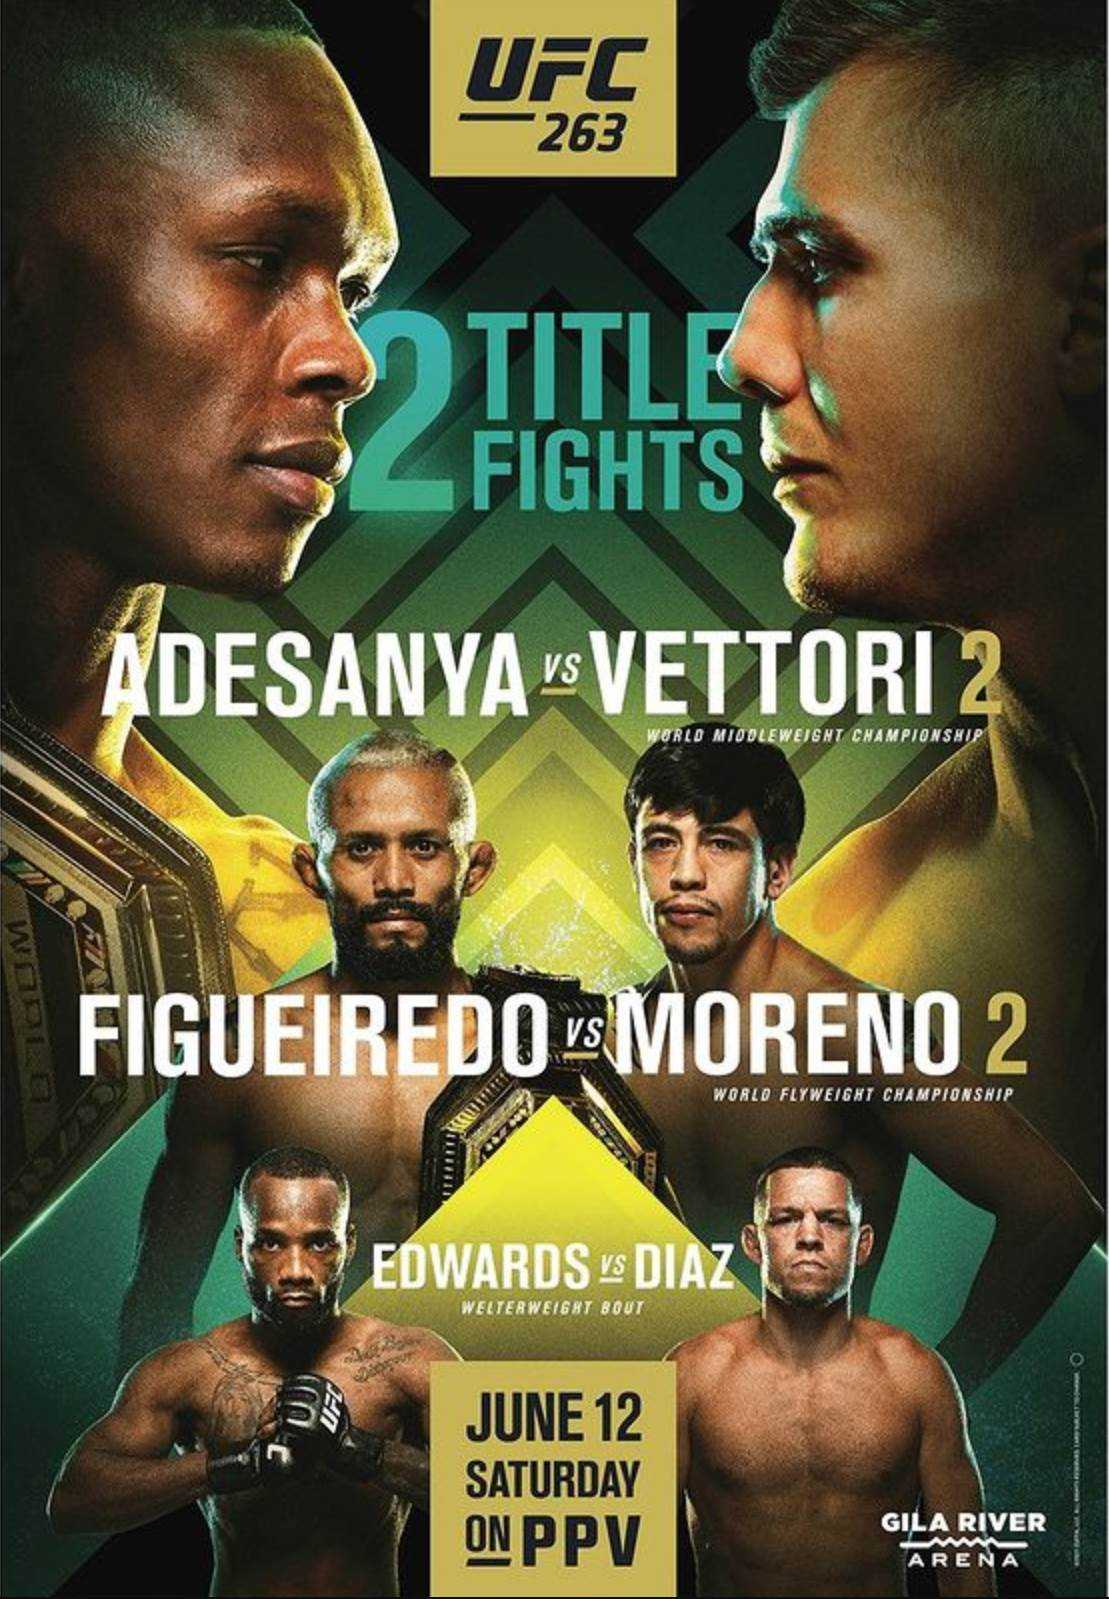 UFC 263 Fight Card Poster